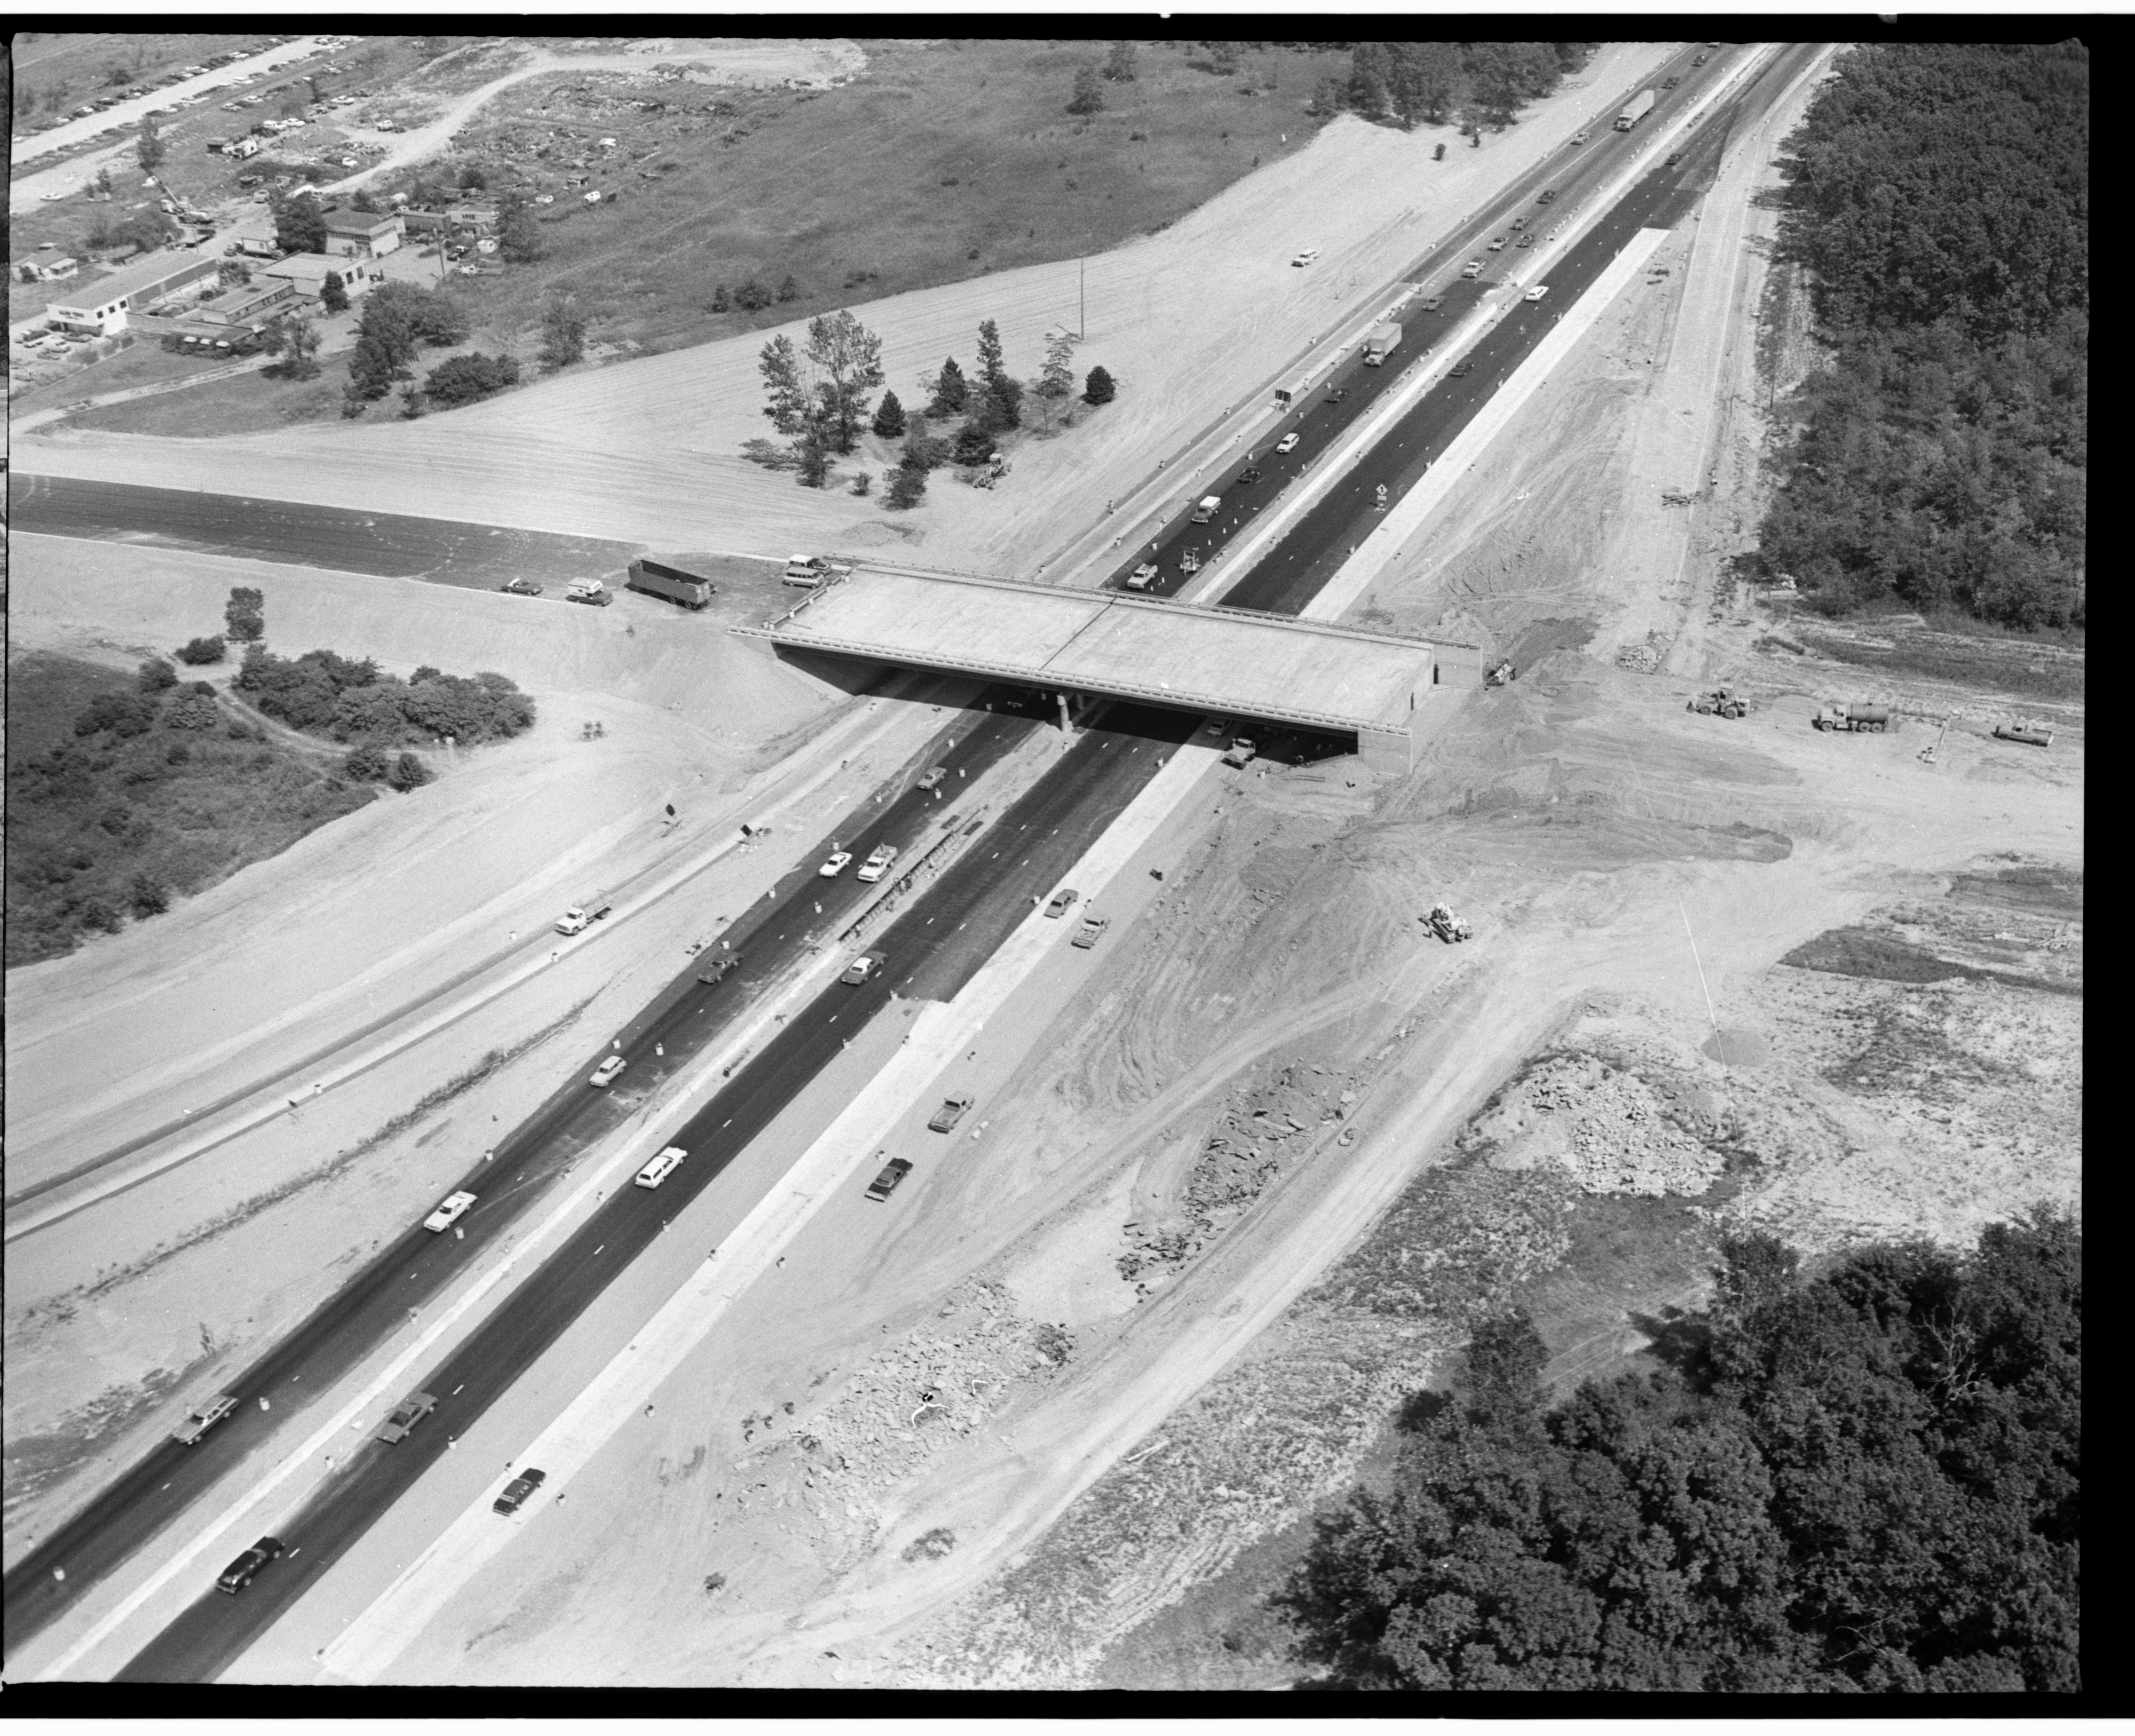 Aerial Photograph of the Carpenter Road Bridge over I-94, August 1976 image